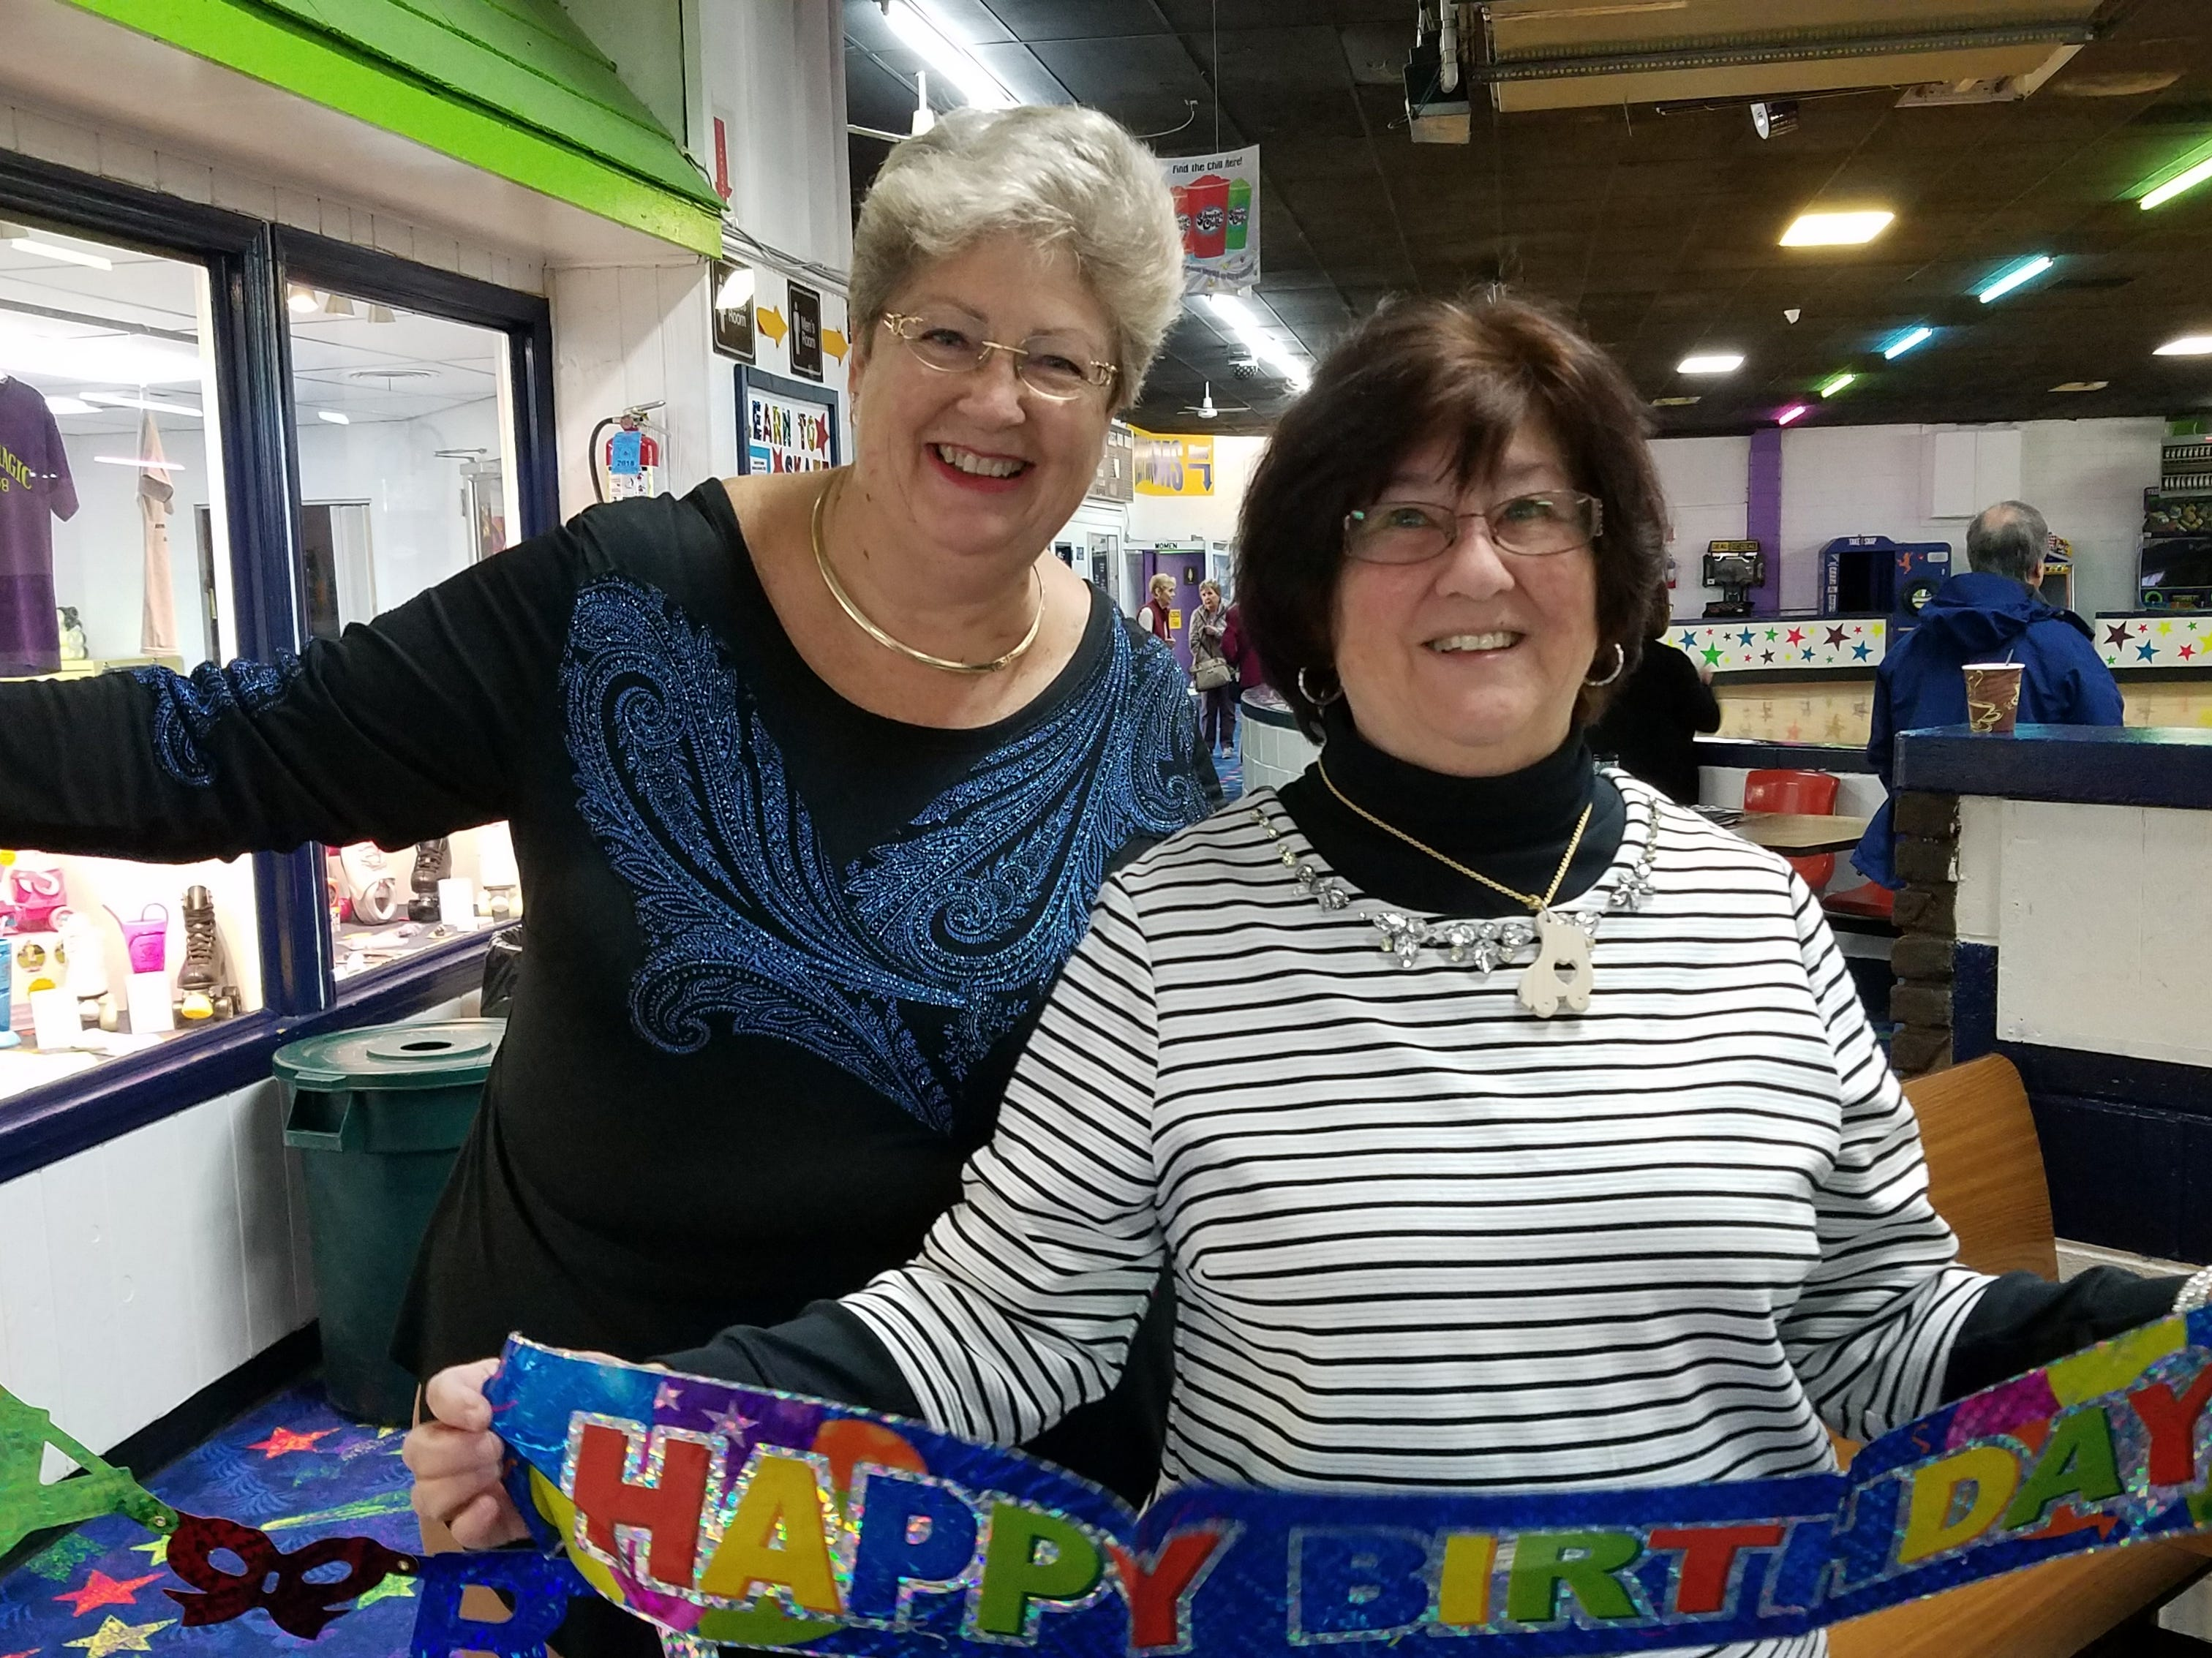 At least twice a week, more than 20 seniors, like Darlene Ostewik of Brooklyn and Joy Tomaino of Eatontown, regularly gather at South Amboy Arenaand take to the rink for a couple hours of roller skating. The skating seniors range in age from 55 to 100.